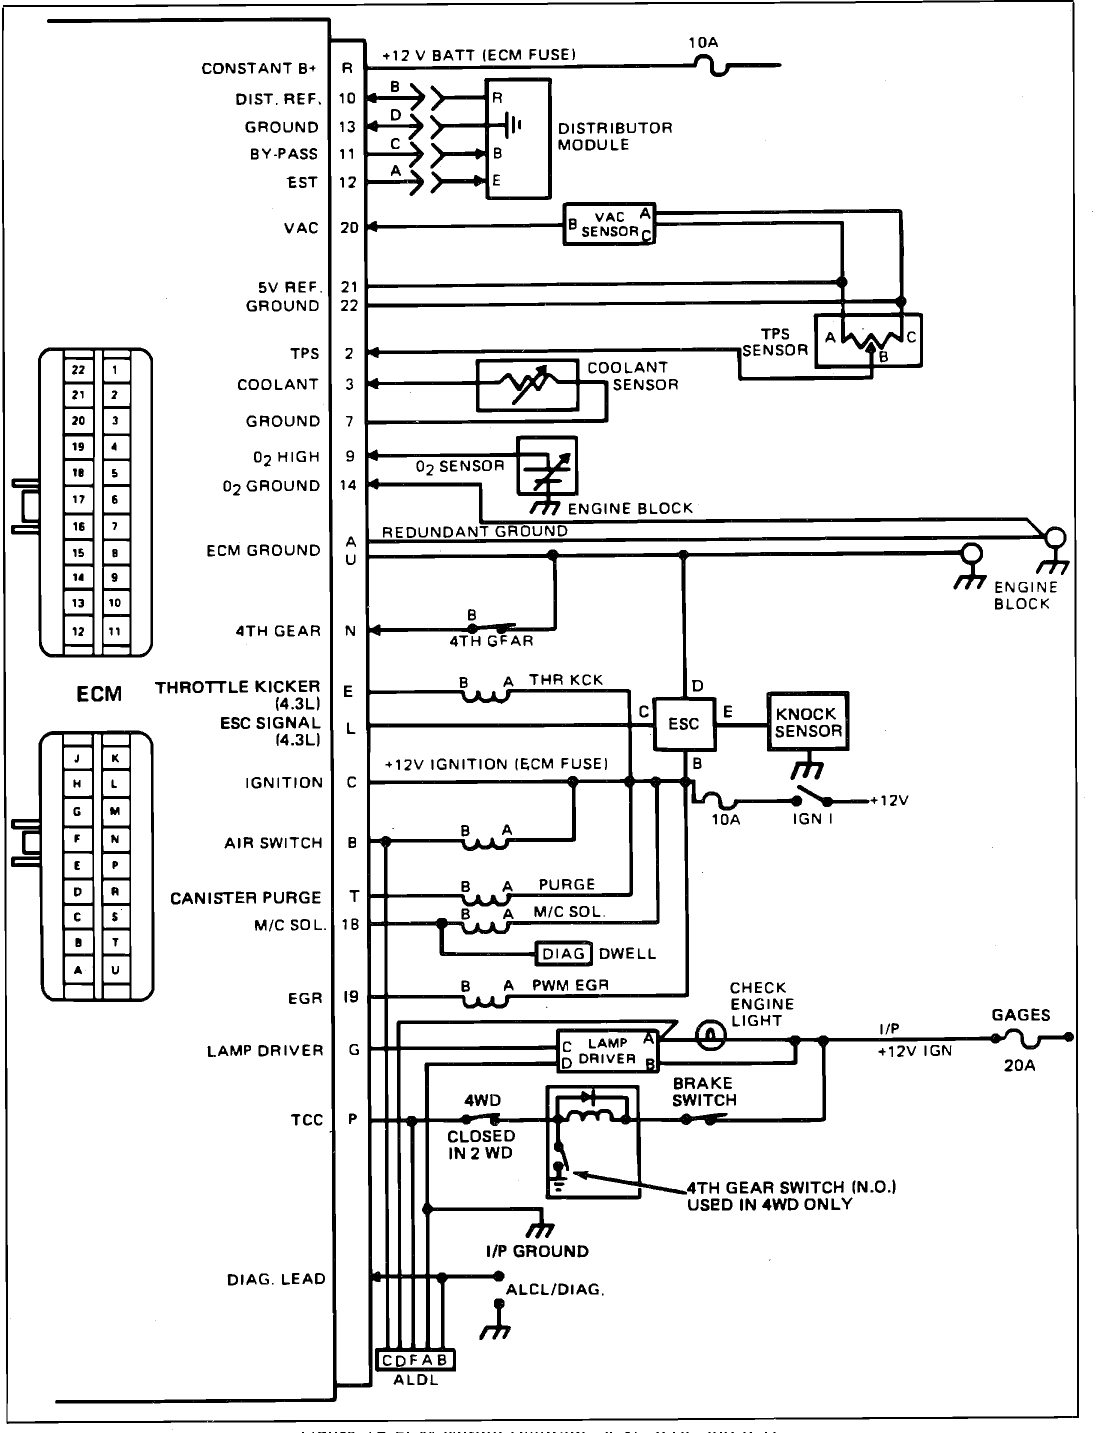 hight resolution of 1995 chevy tahoe engine wiring diagram schema wiring diagramwiring color diagram also vacuum line diagram for